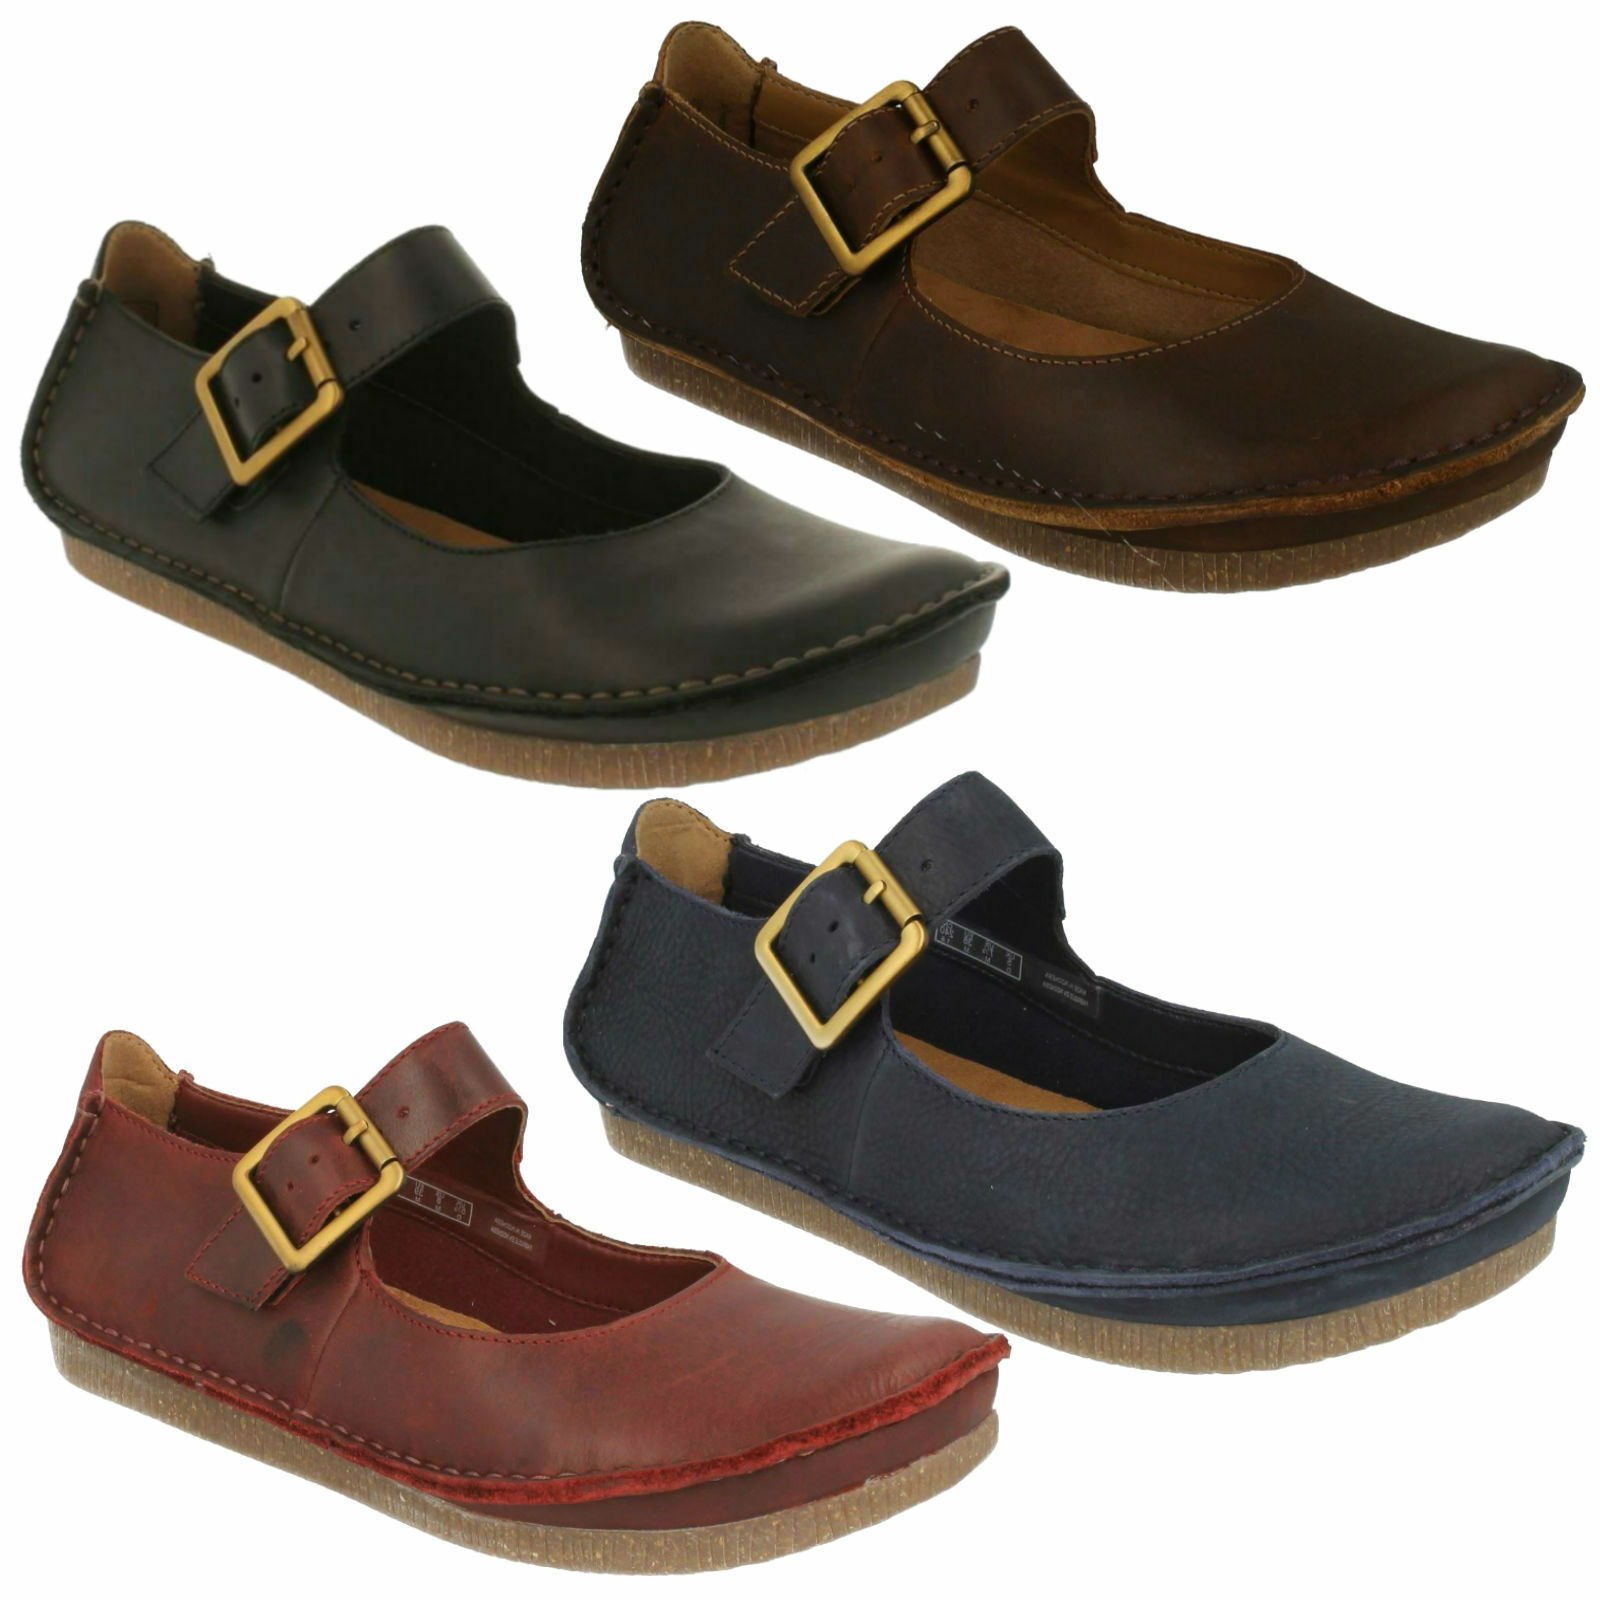 LADIES CLARKS CASUAL MARY JANE STYLE LEATHER BUCKLED BAR FLAT CASUAL CLARKS SHOES JANEY JUNE d7cda7